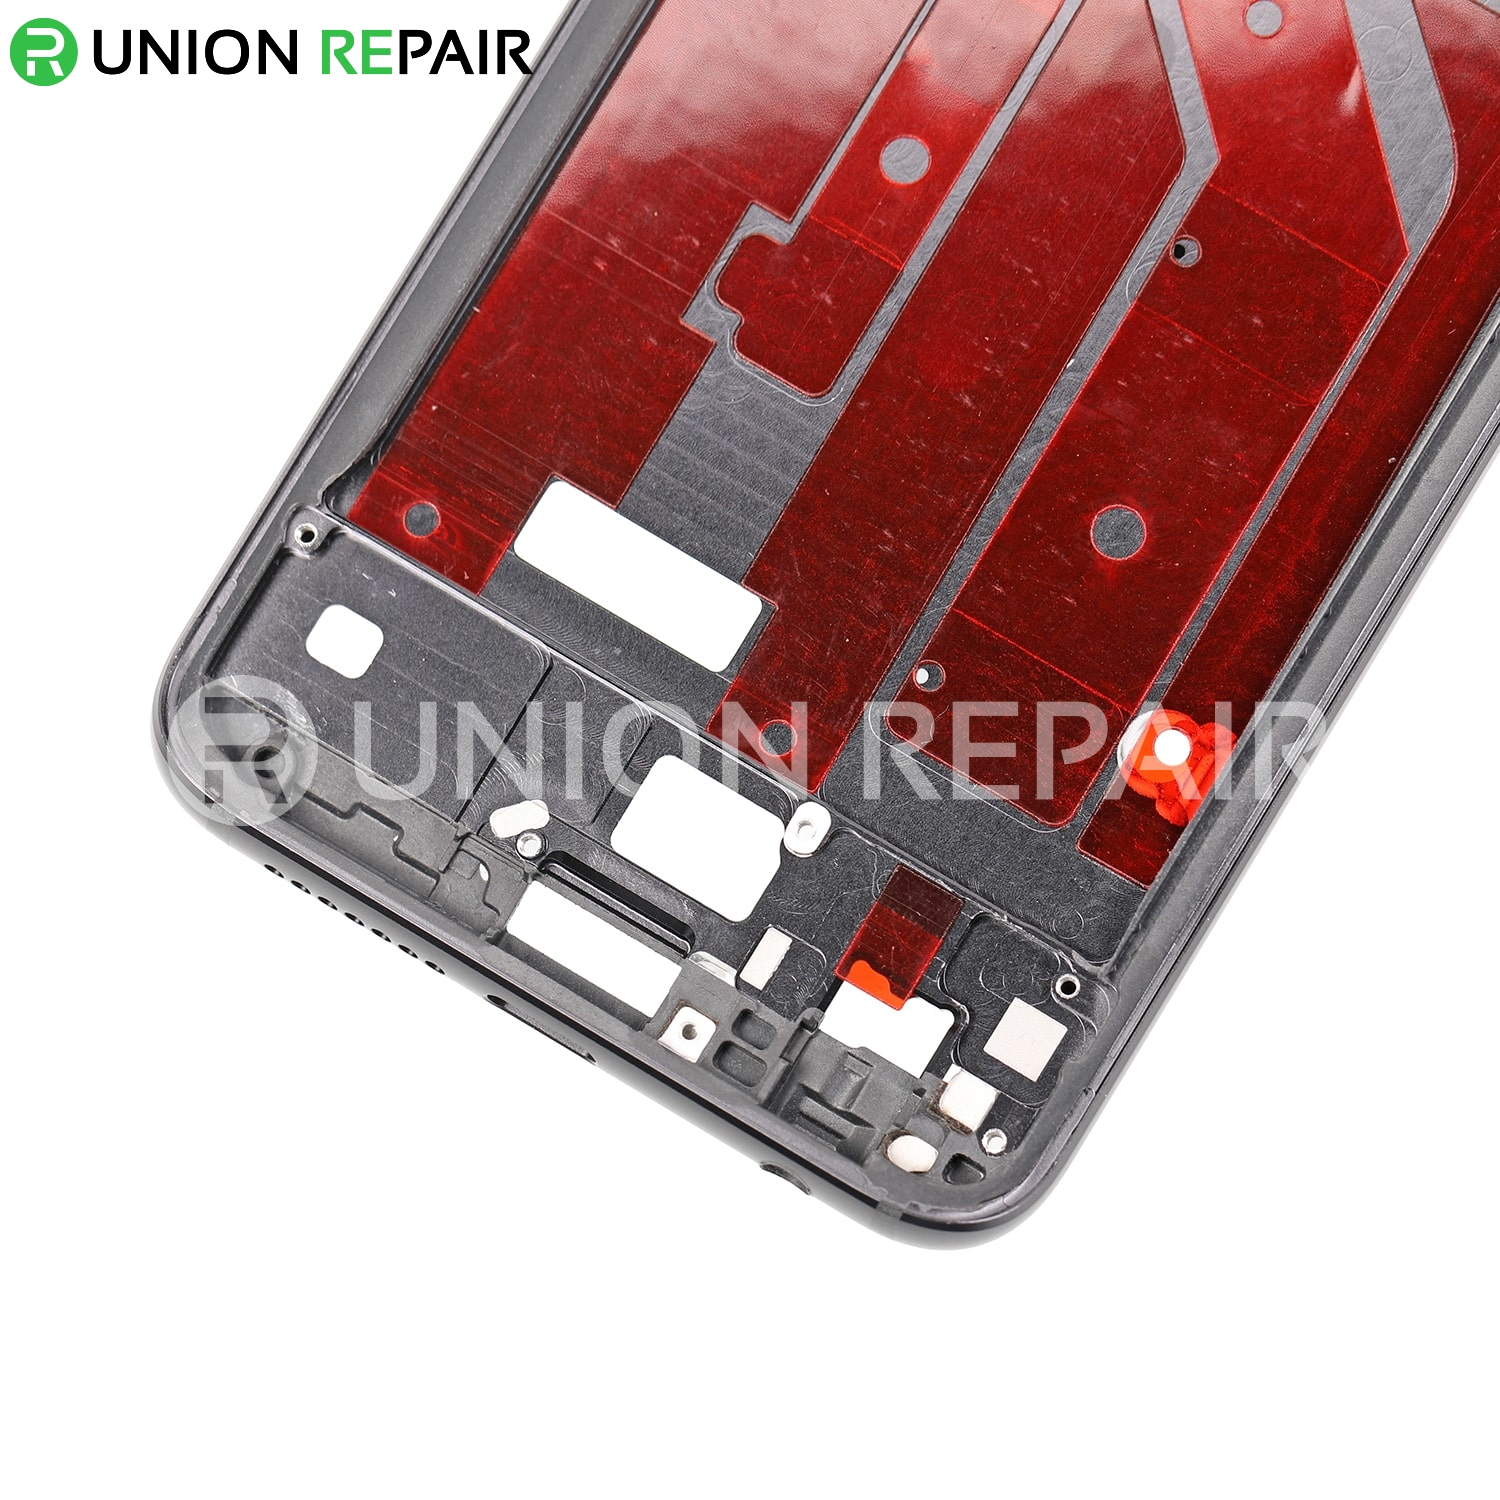 Replacement for Huawei Honor 9 Rear Housing - Black